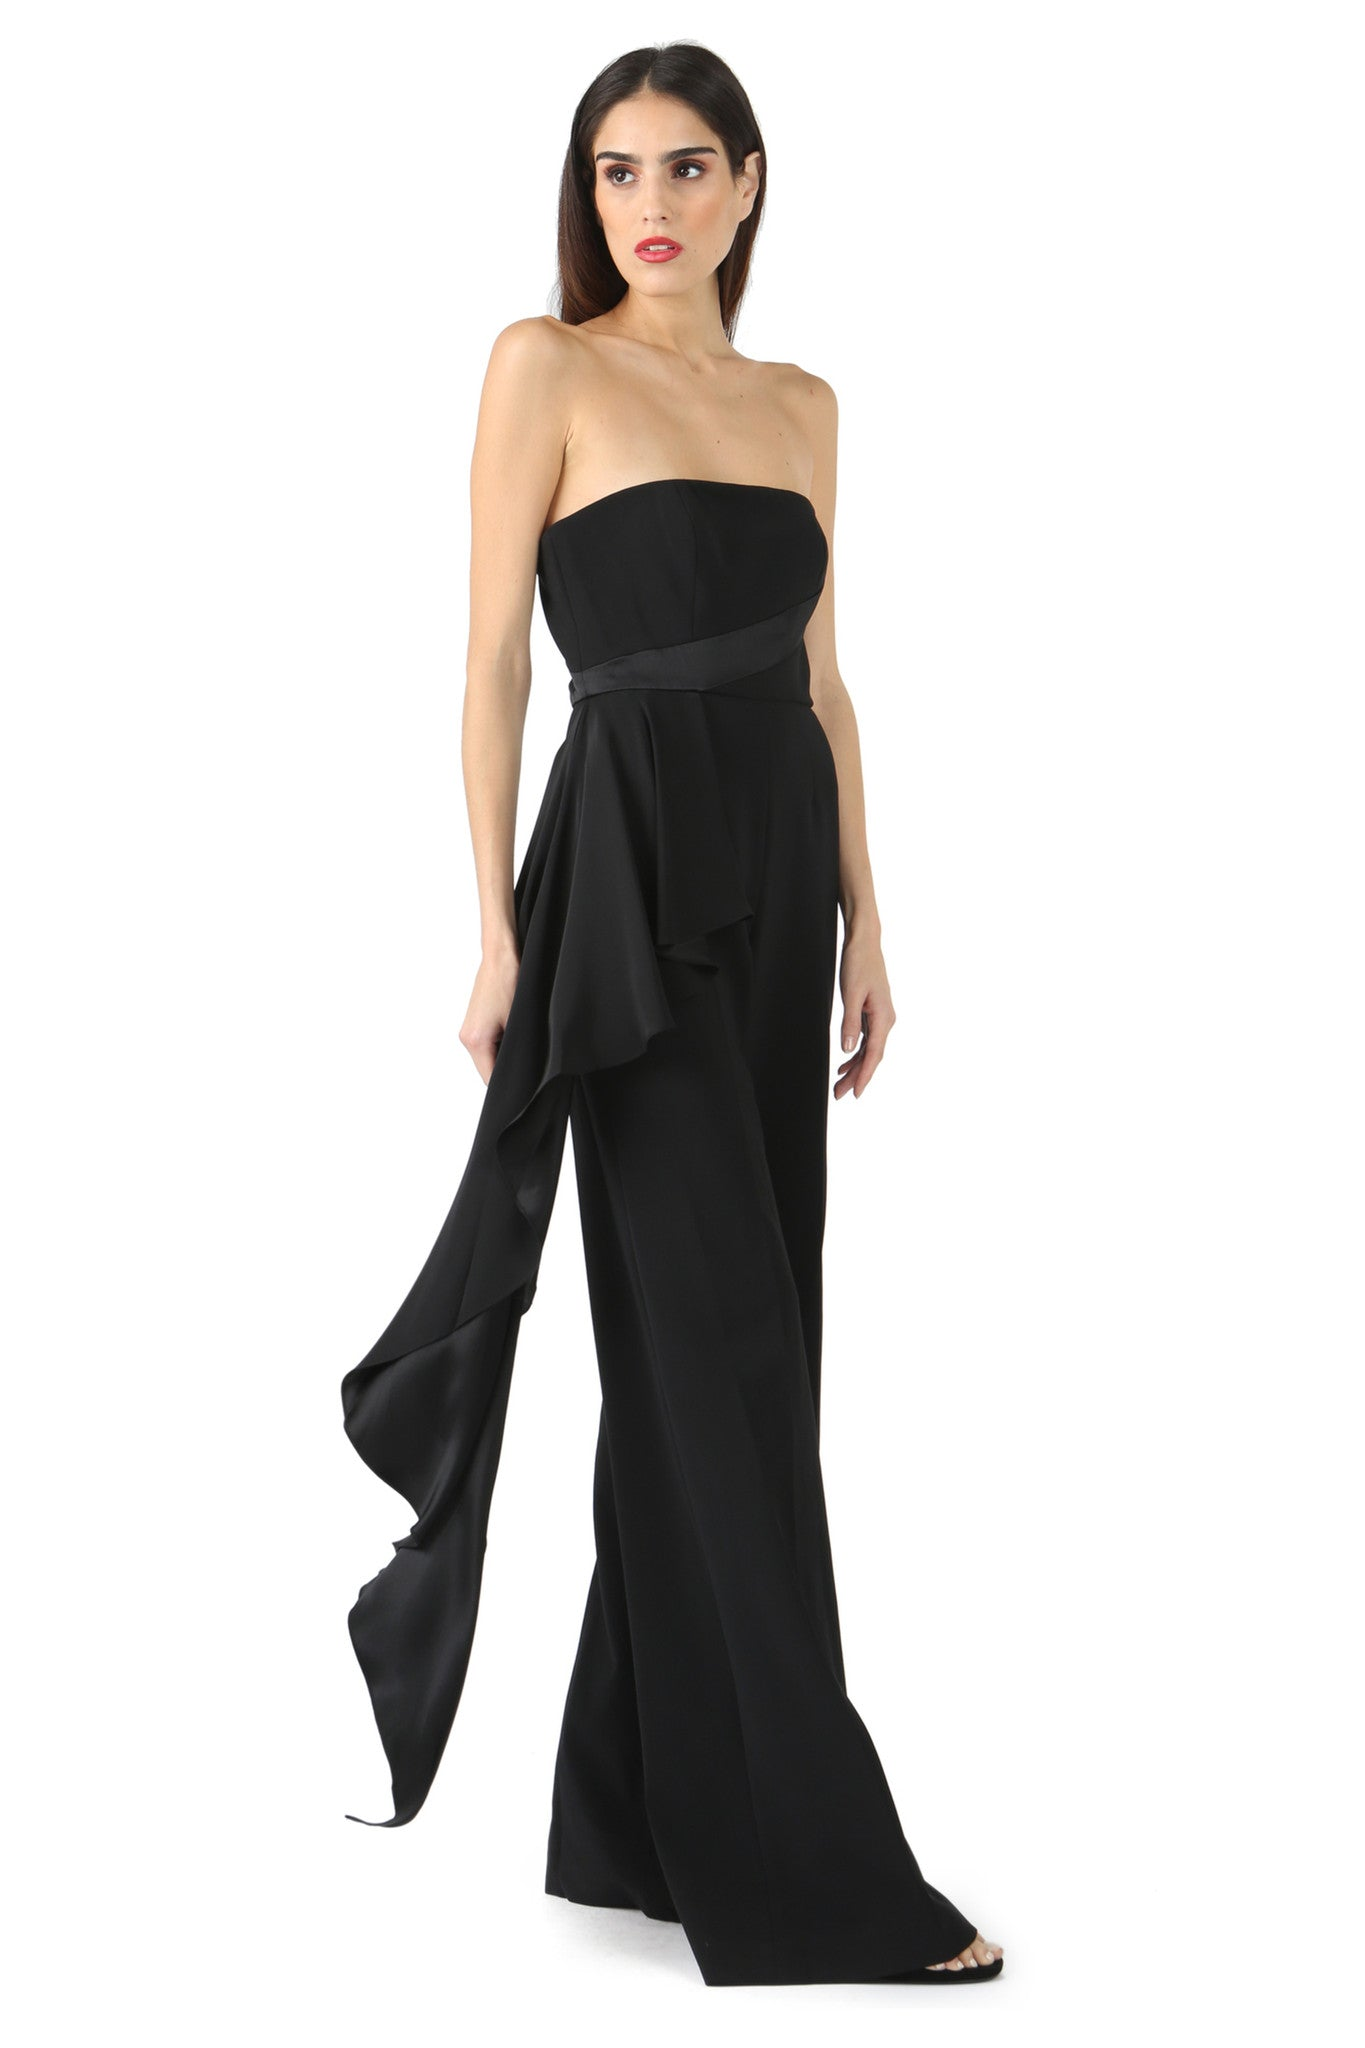 Jay Godfrey Black Strapless Romper - Side 2  View